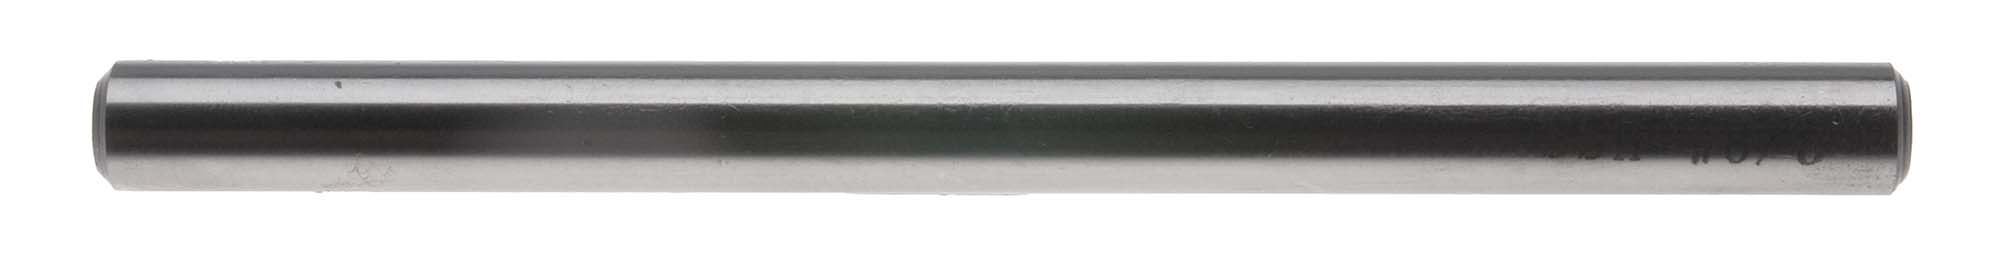 "Q (.332"") Jobber Length Drill Blank, High Speed Steel"